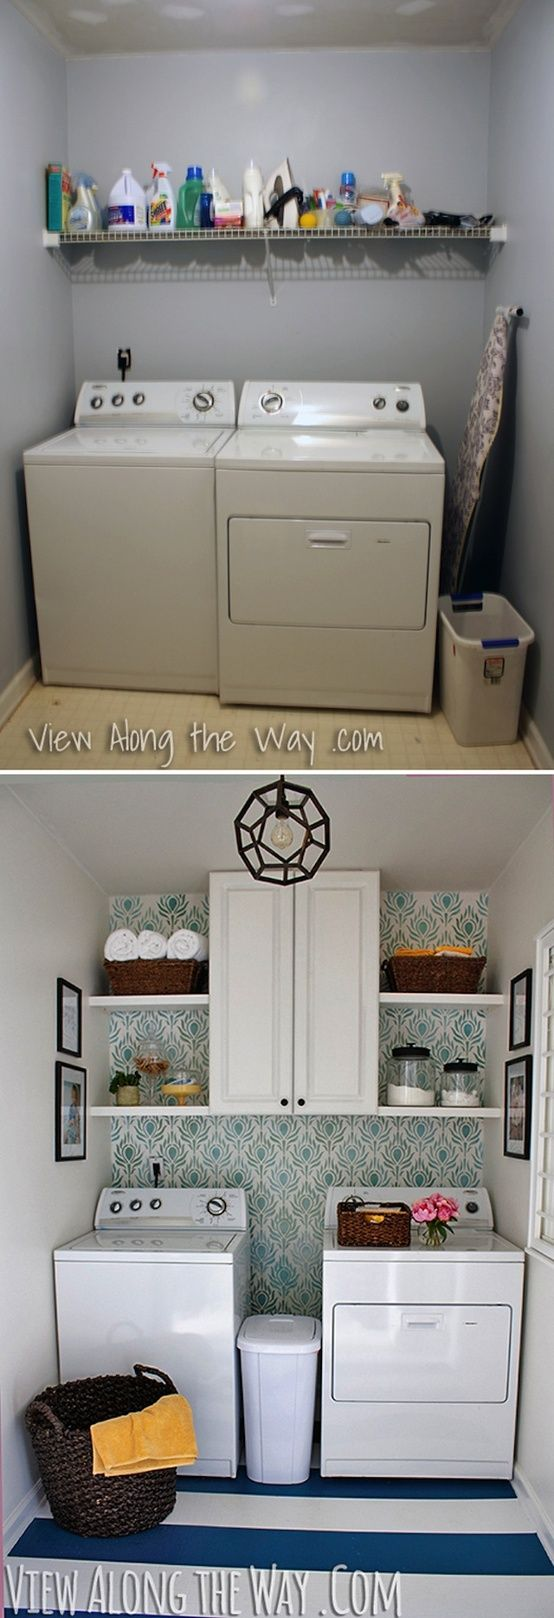 Now this is one awesome laundry room! I absolutely love the way they remodeled it. They took it from boring and dull to glamorous and fun. The decorator here managed to make a small space look like...